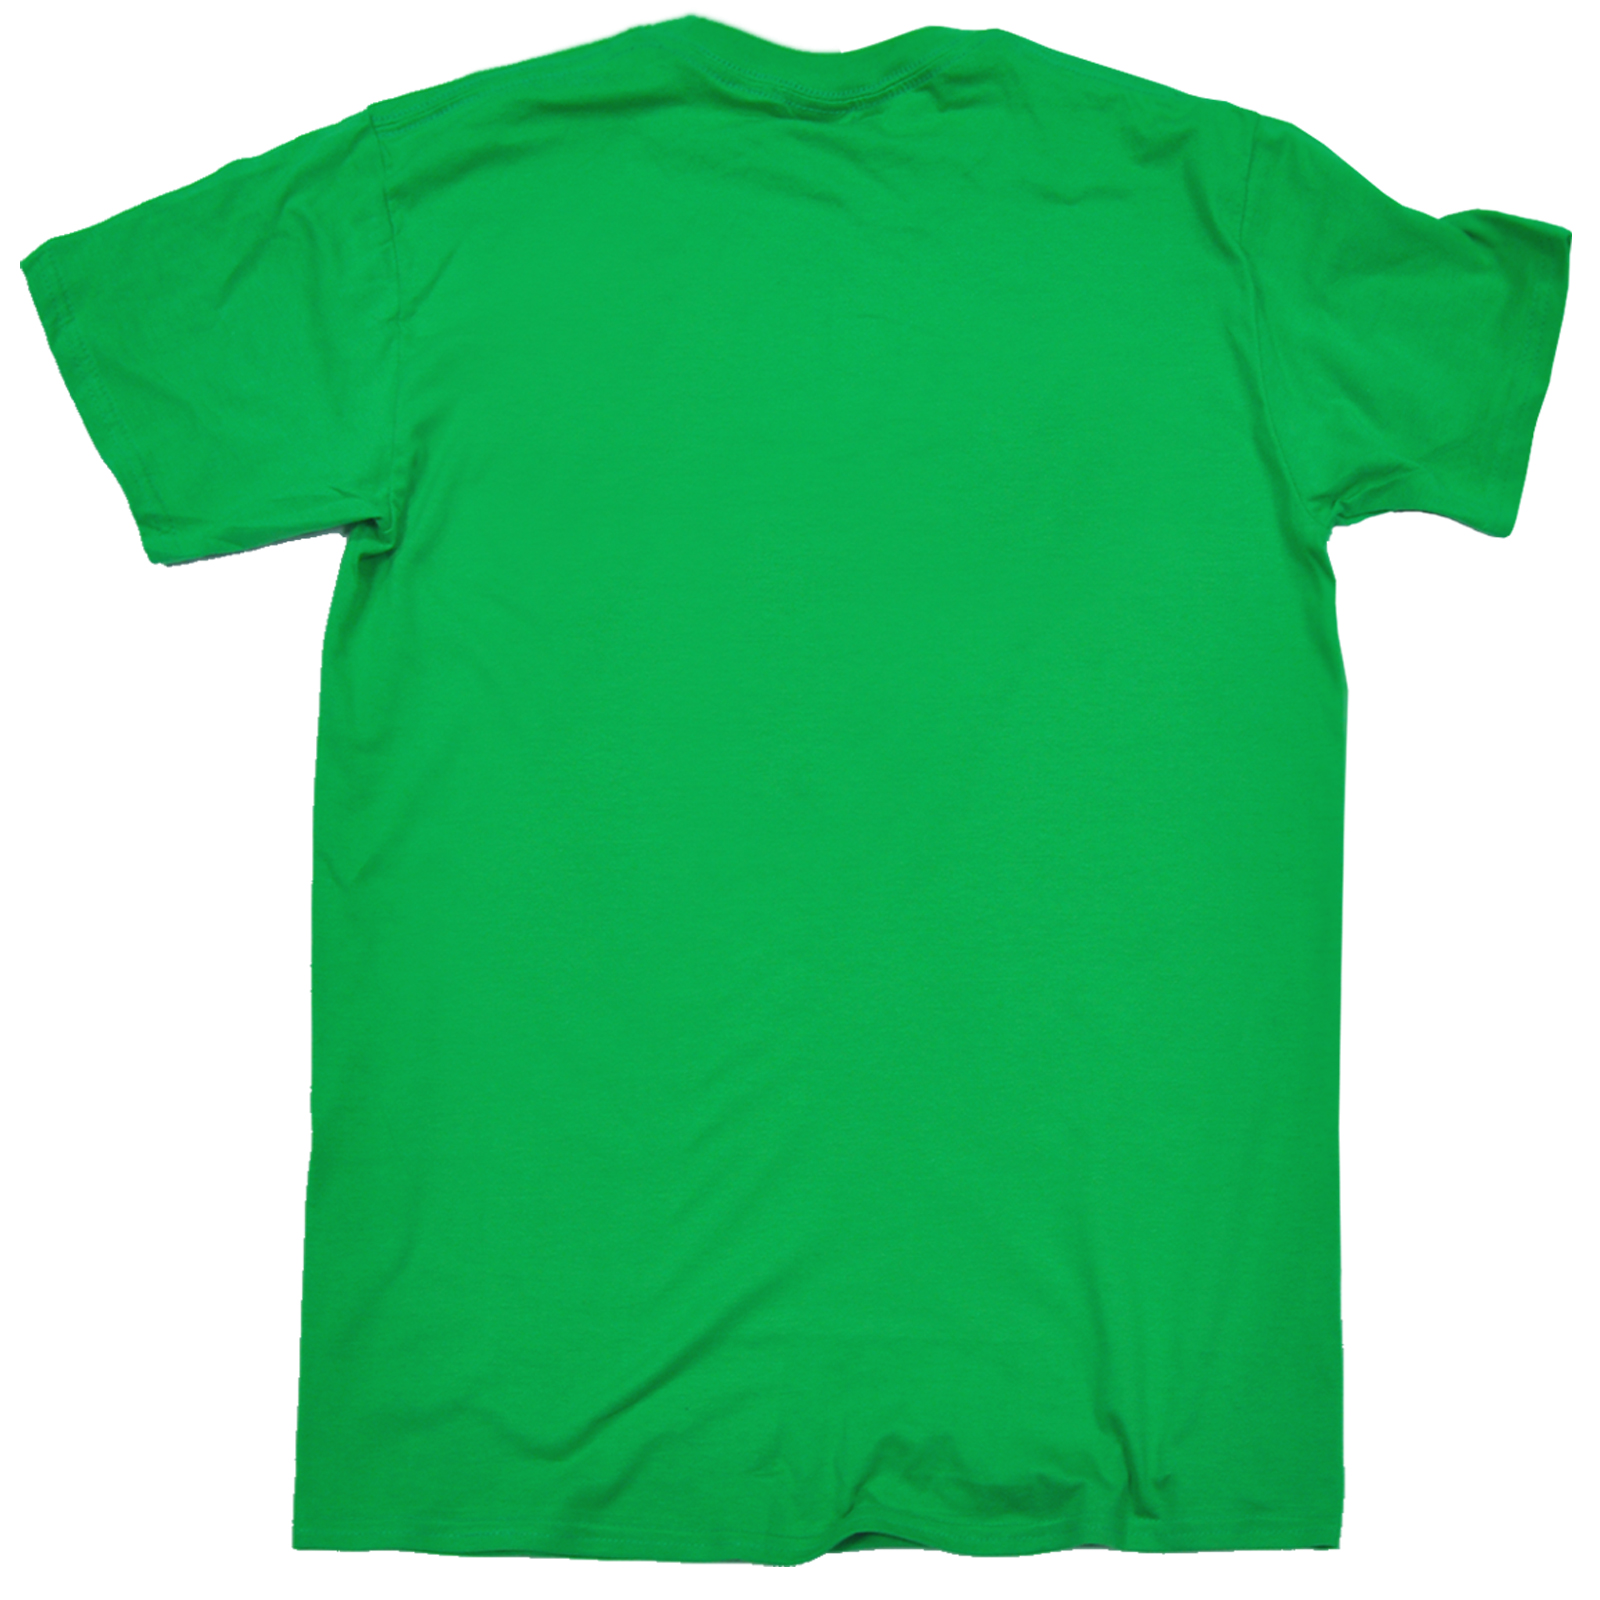 Funny-Novelty-T-Shirt-Mens-tee-TShirt-Moday-Am-Nope-Glow-In-The-Dark thumbnail 7